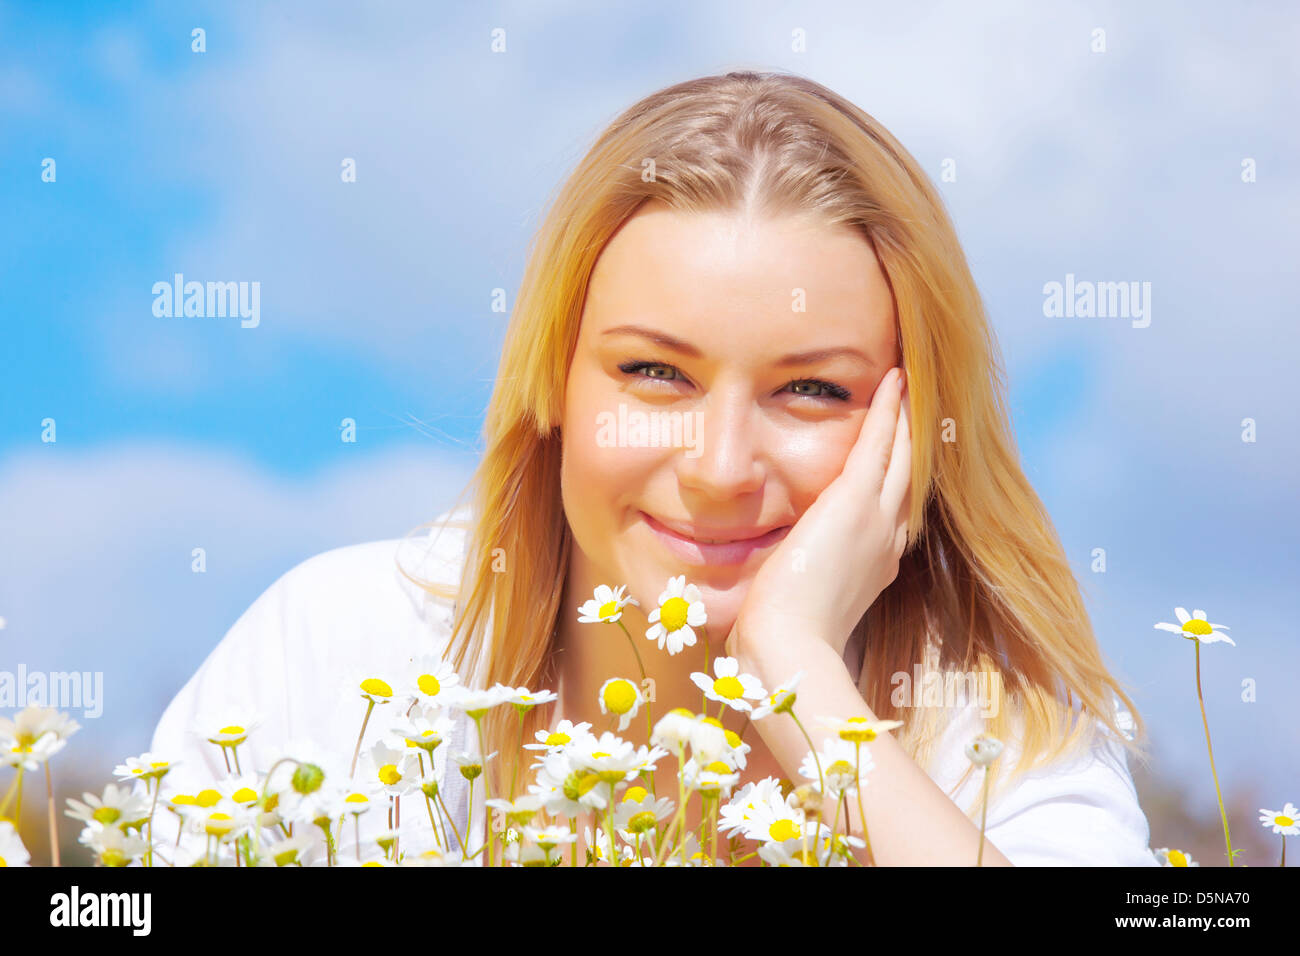 Closeup portrait of sweet blond girl on white daisies glade, enjoying summer nature, relaxation and holiday concept - Stock Image